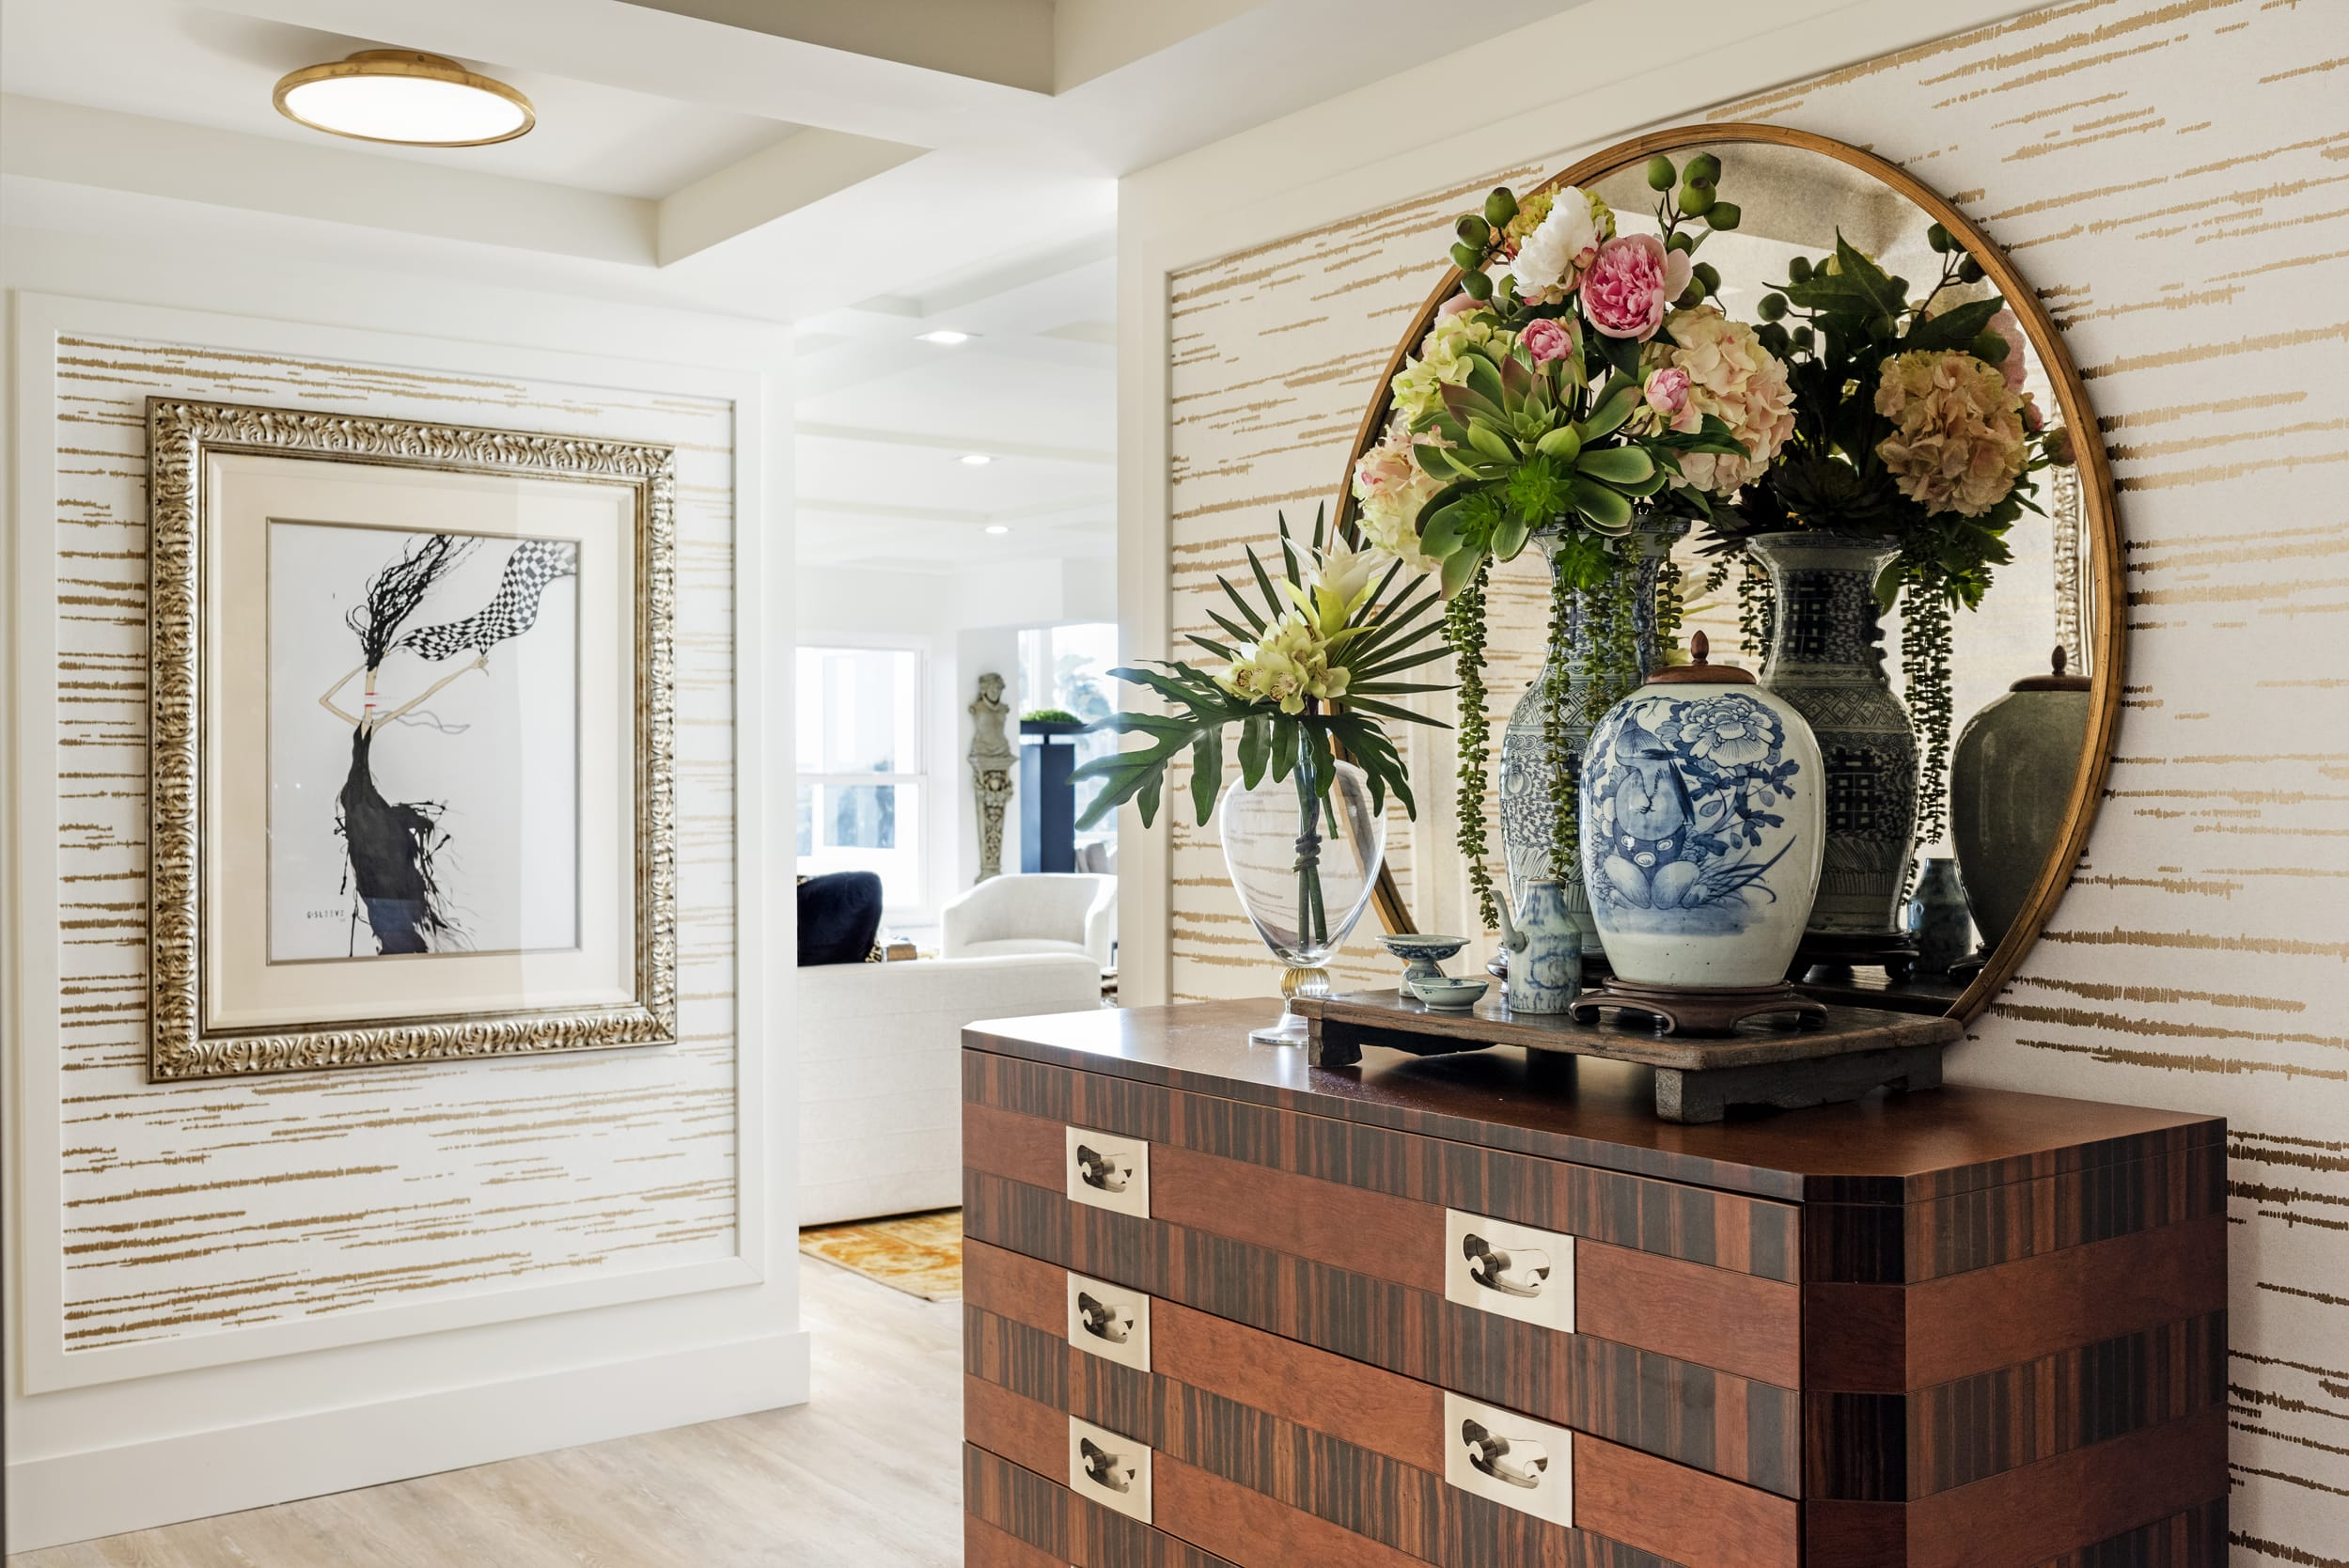 Floral Entry Textured Wood Chest Of Draws Gold Lined Wall Paper Gold Framed Art Work